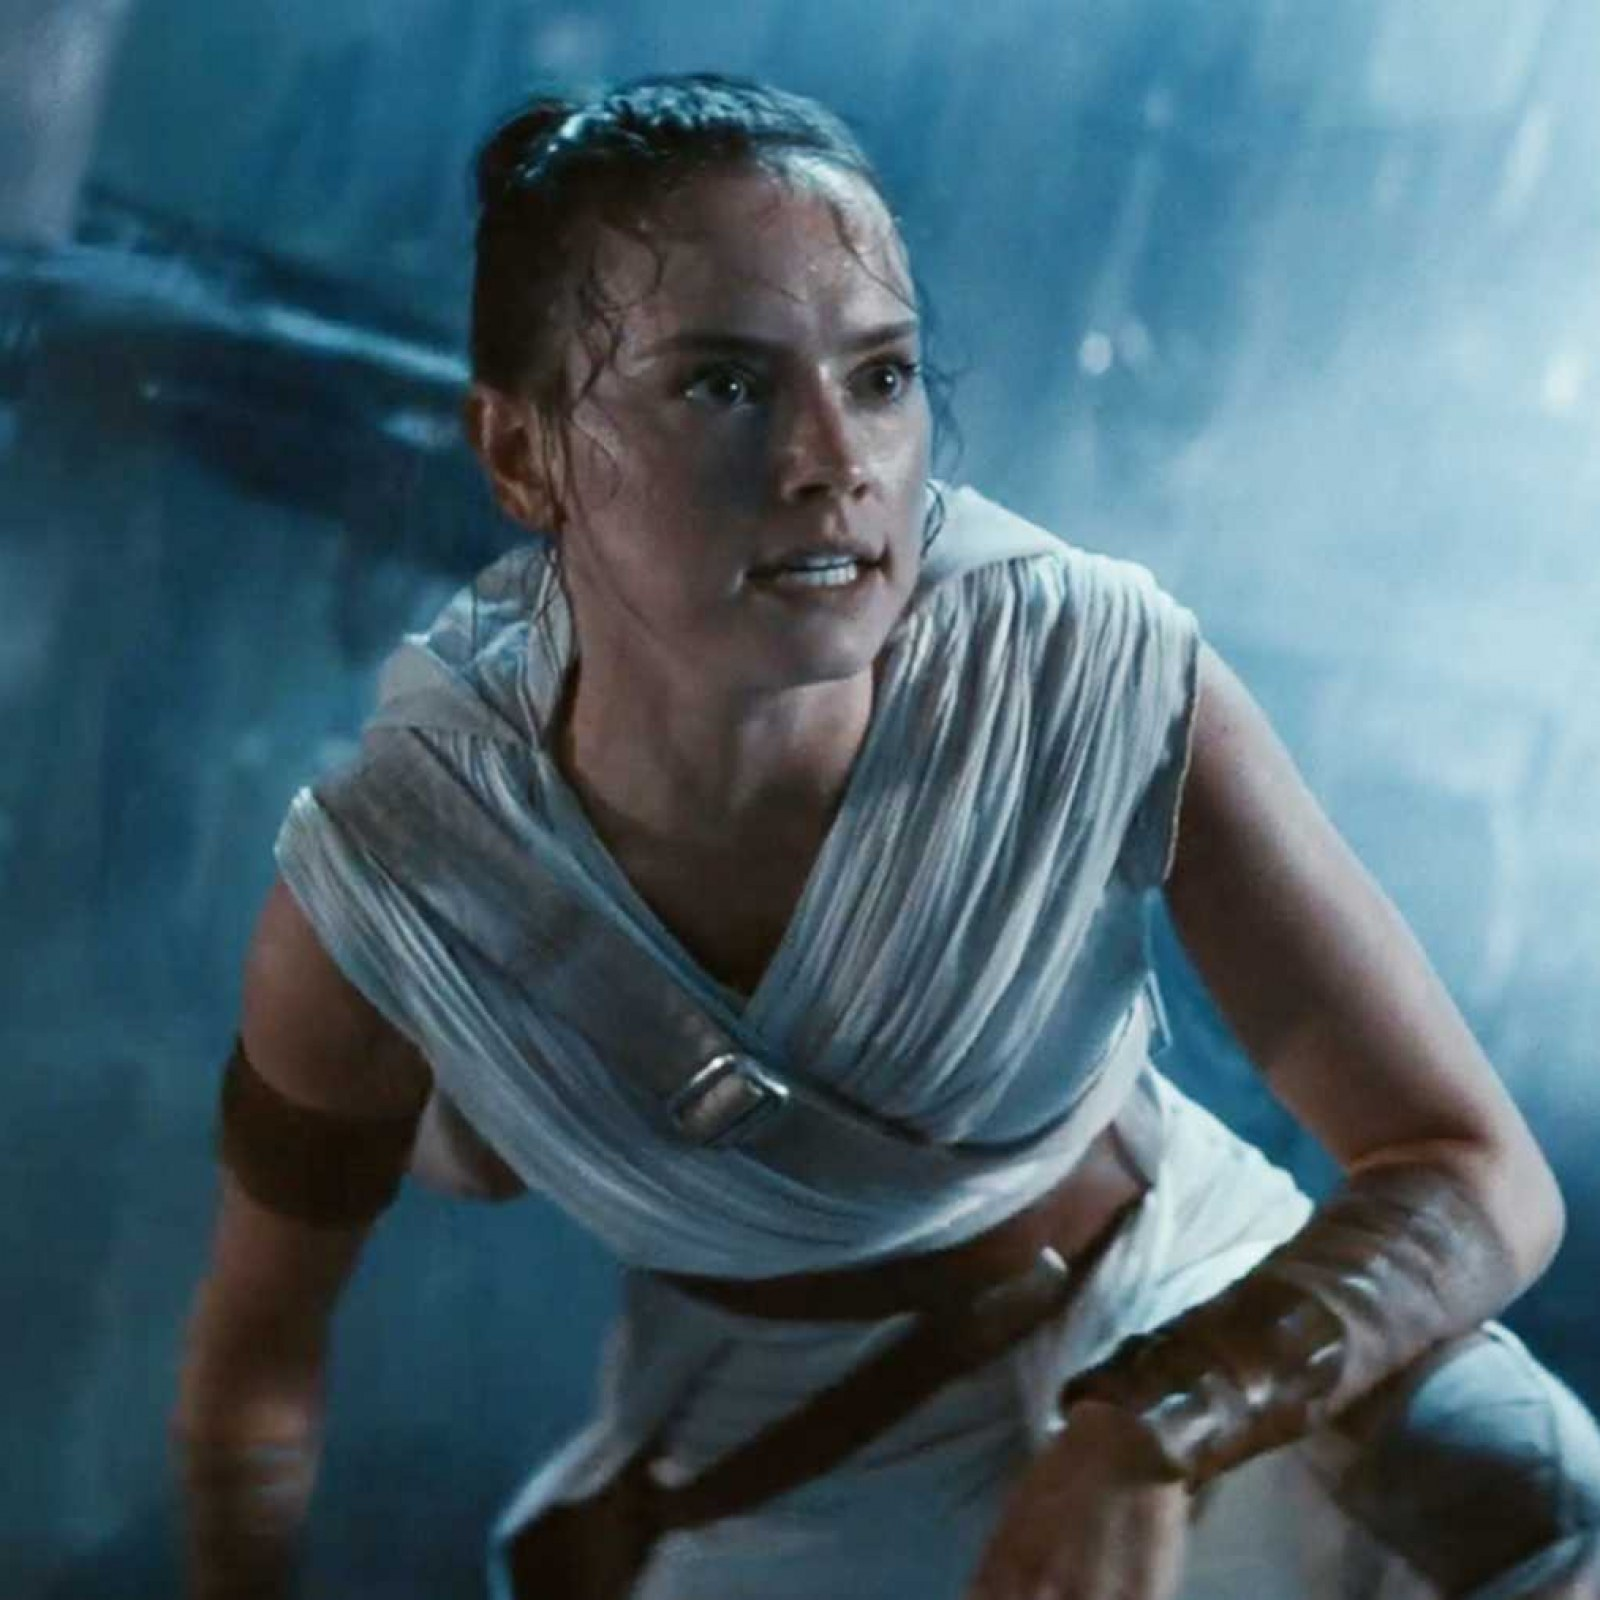 Star Wars Rise Of Skywalker Ending Explained What Happened At The End